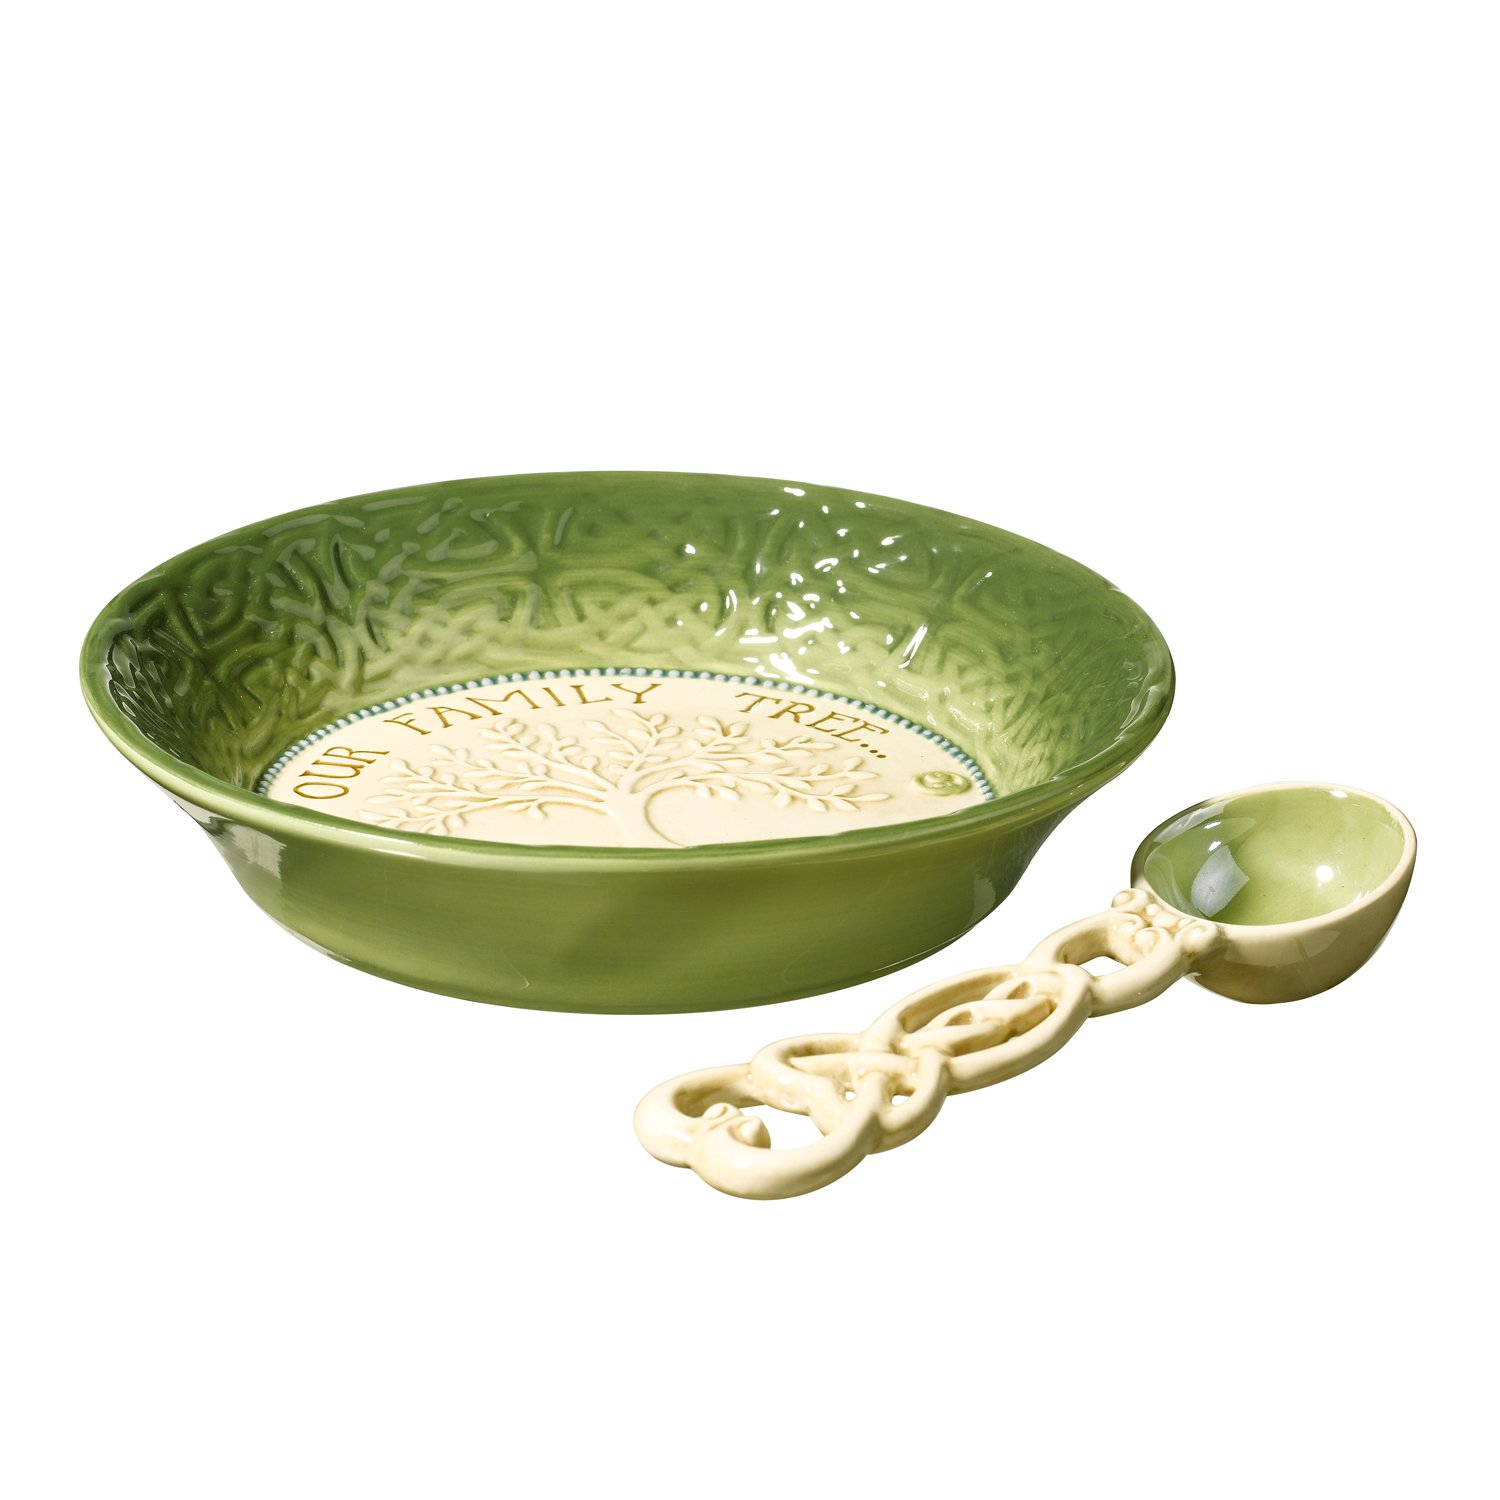 Grasslands Road Celtic 1-1/2-Inch by 7-1/2-InchOur Family Tree Is Full of Nuts Nut Bowl with Spoon, Gift Boxed 461087